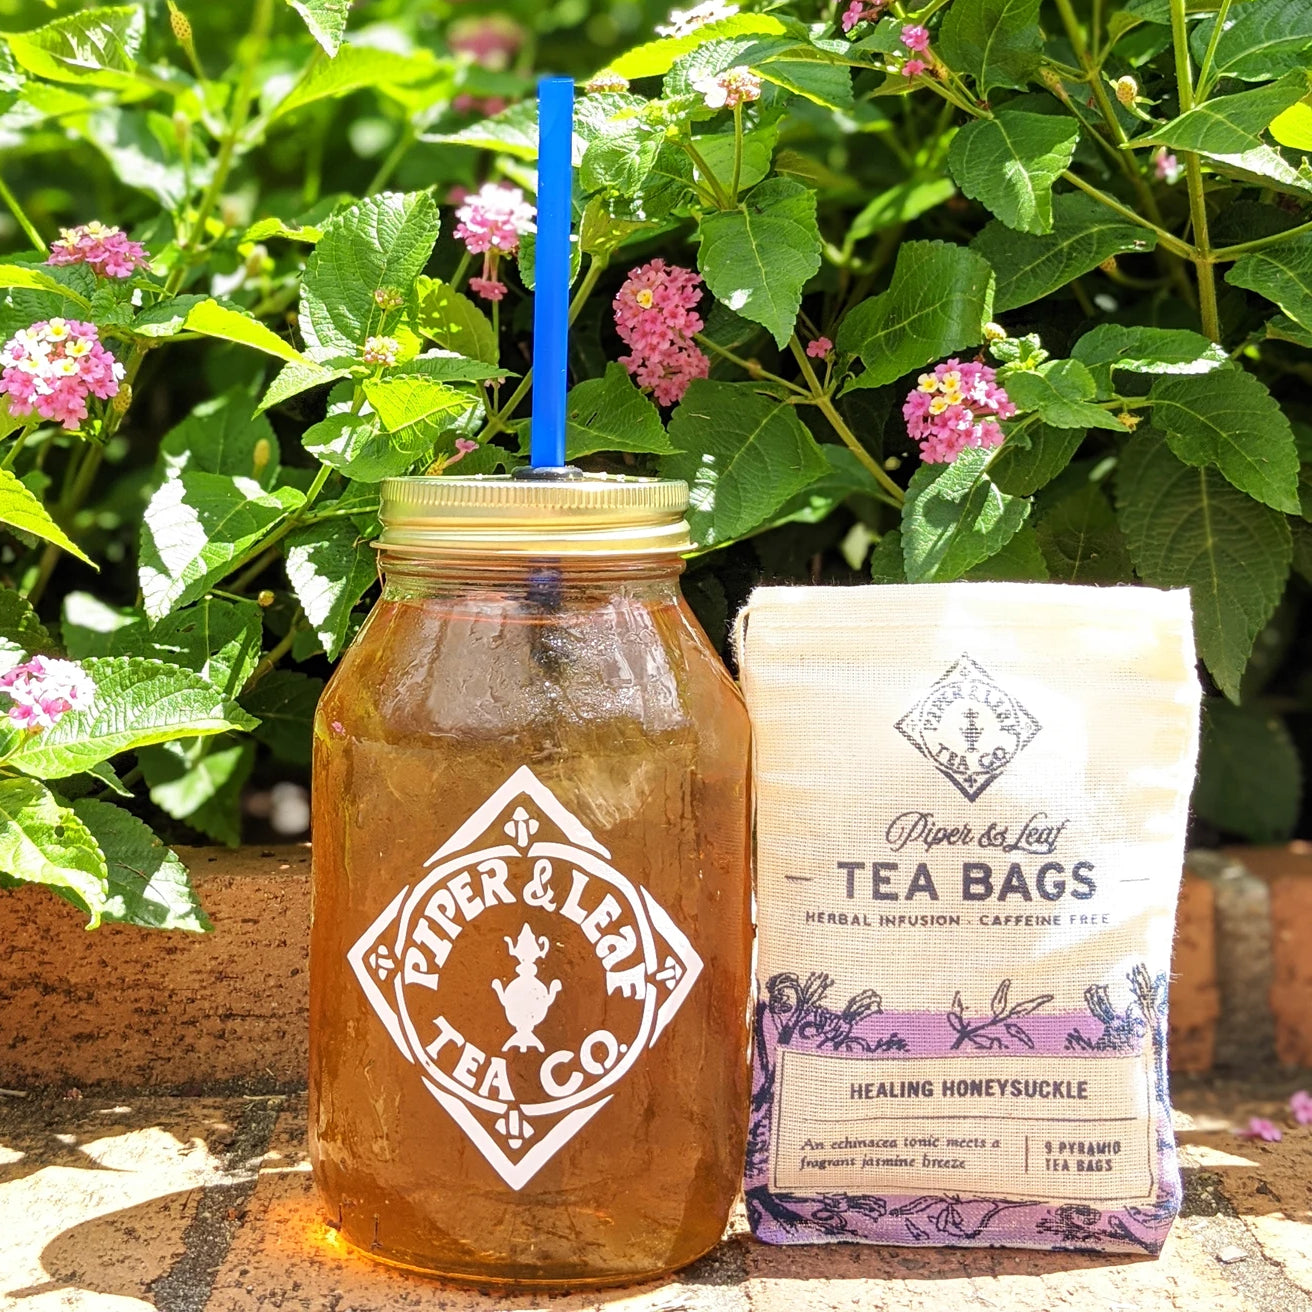 A bag of Healing Honeysuckle loose leaf and a quart jar of iced tea sit in front of a flowering bush